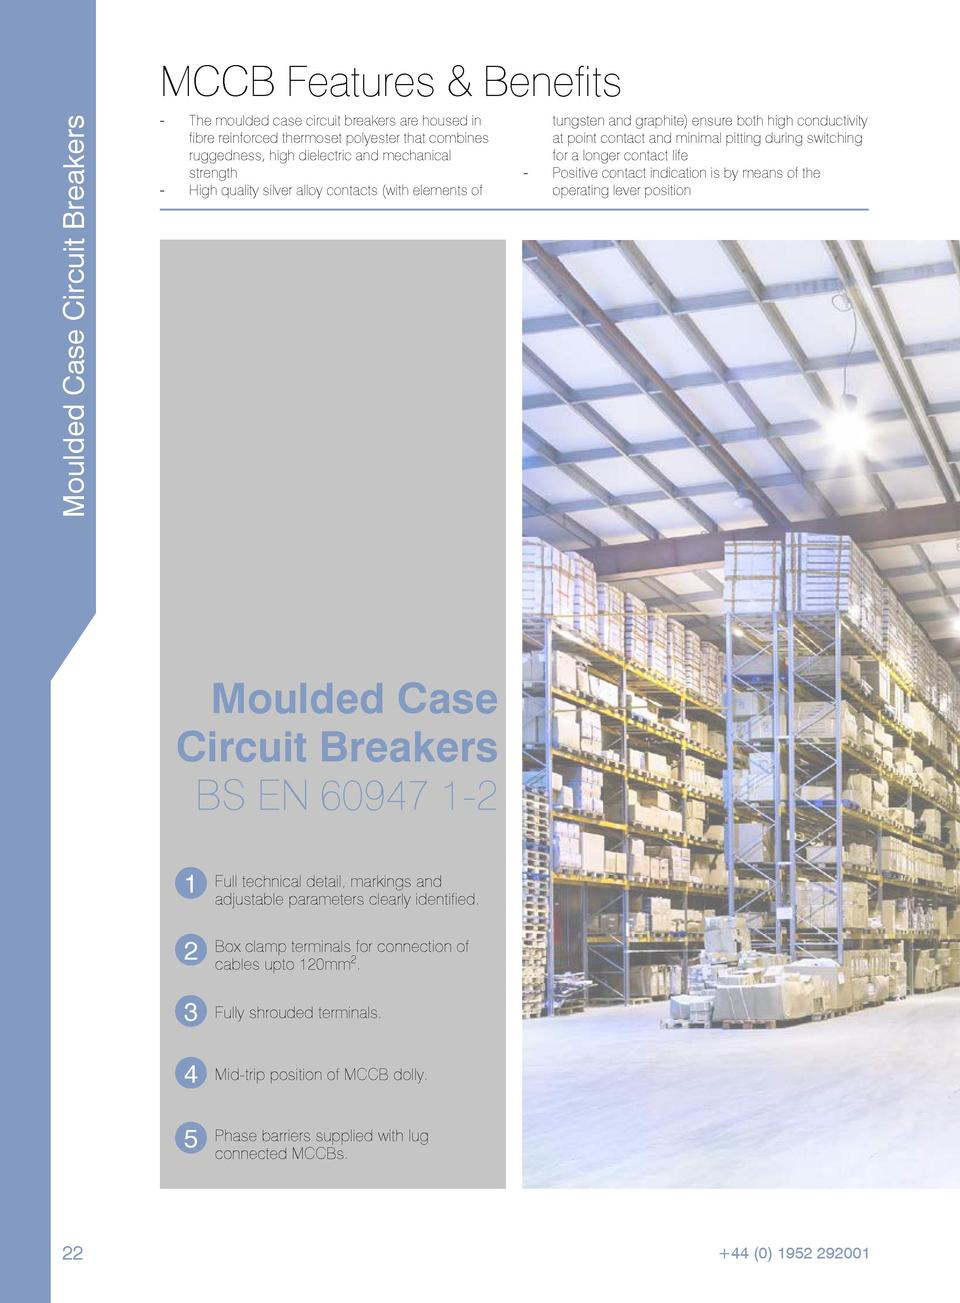 Moulded Case Circuit Breakers  MCCB Features   Benefits --  --  The moulded case circuit breakers are housed in fibre rein...